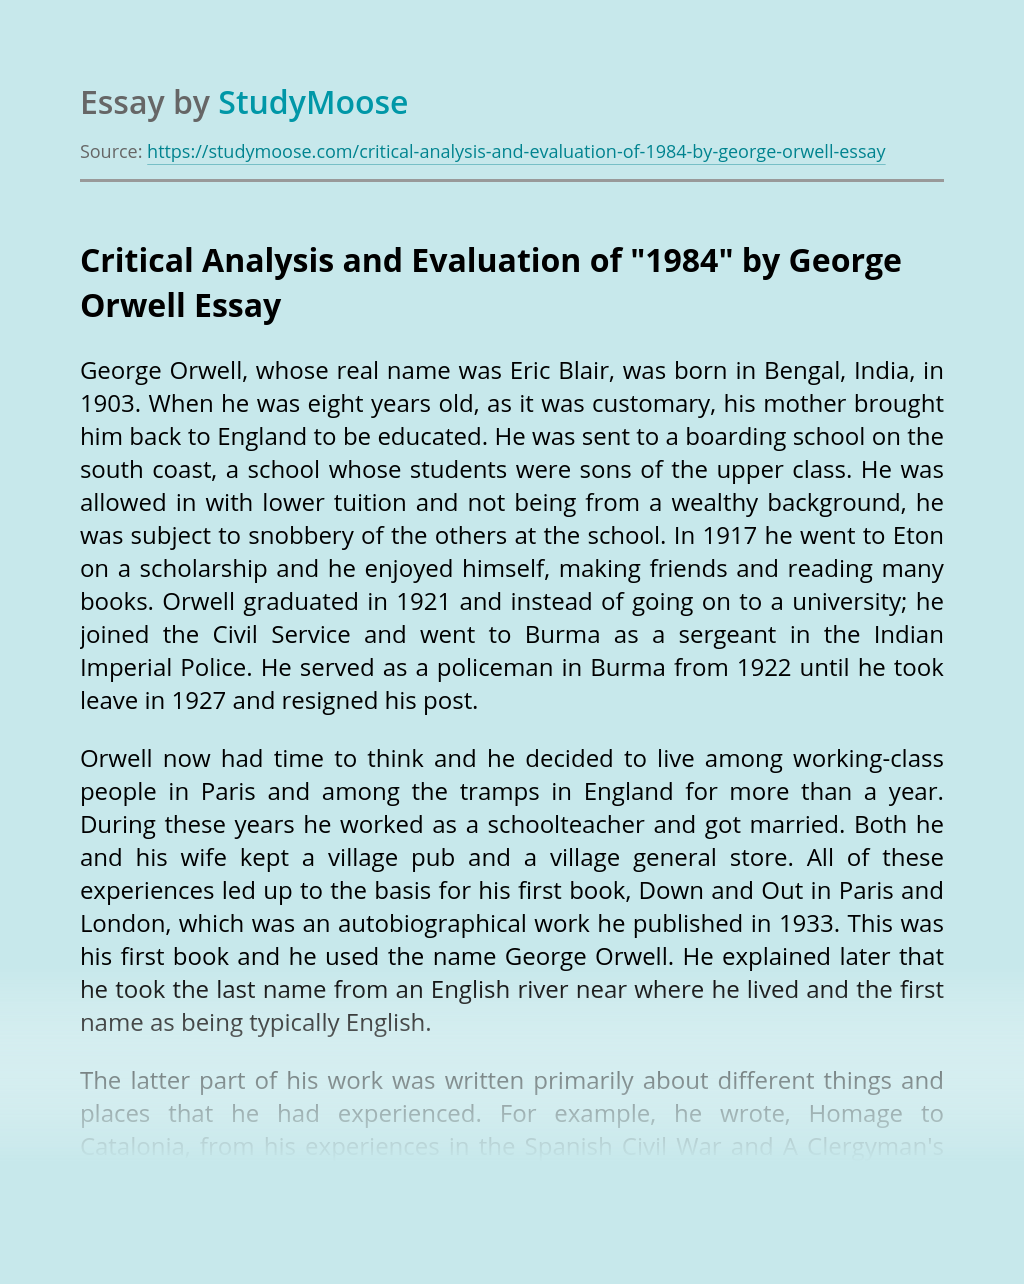 """Critical Analysis and Evaluation of """"1984"""" by George Orwell"""